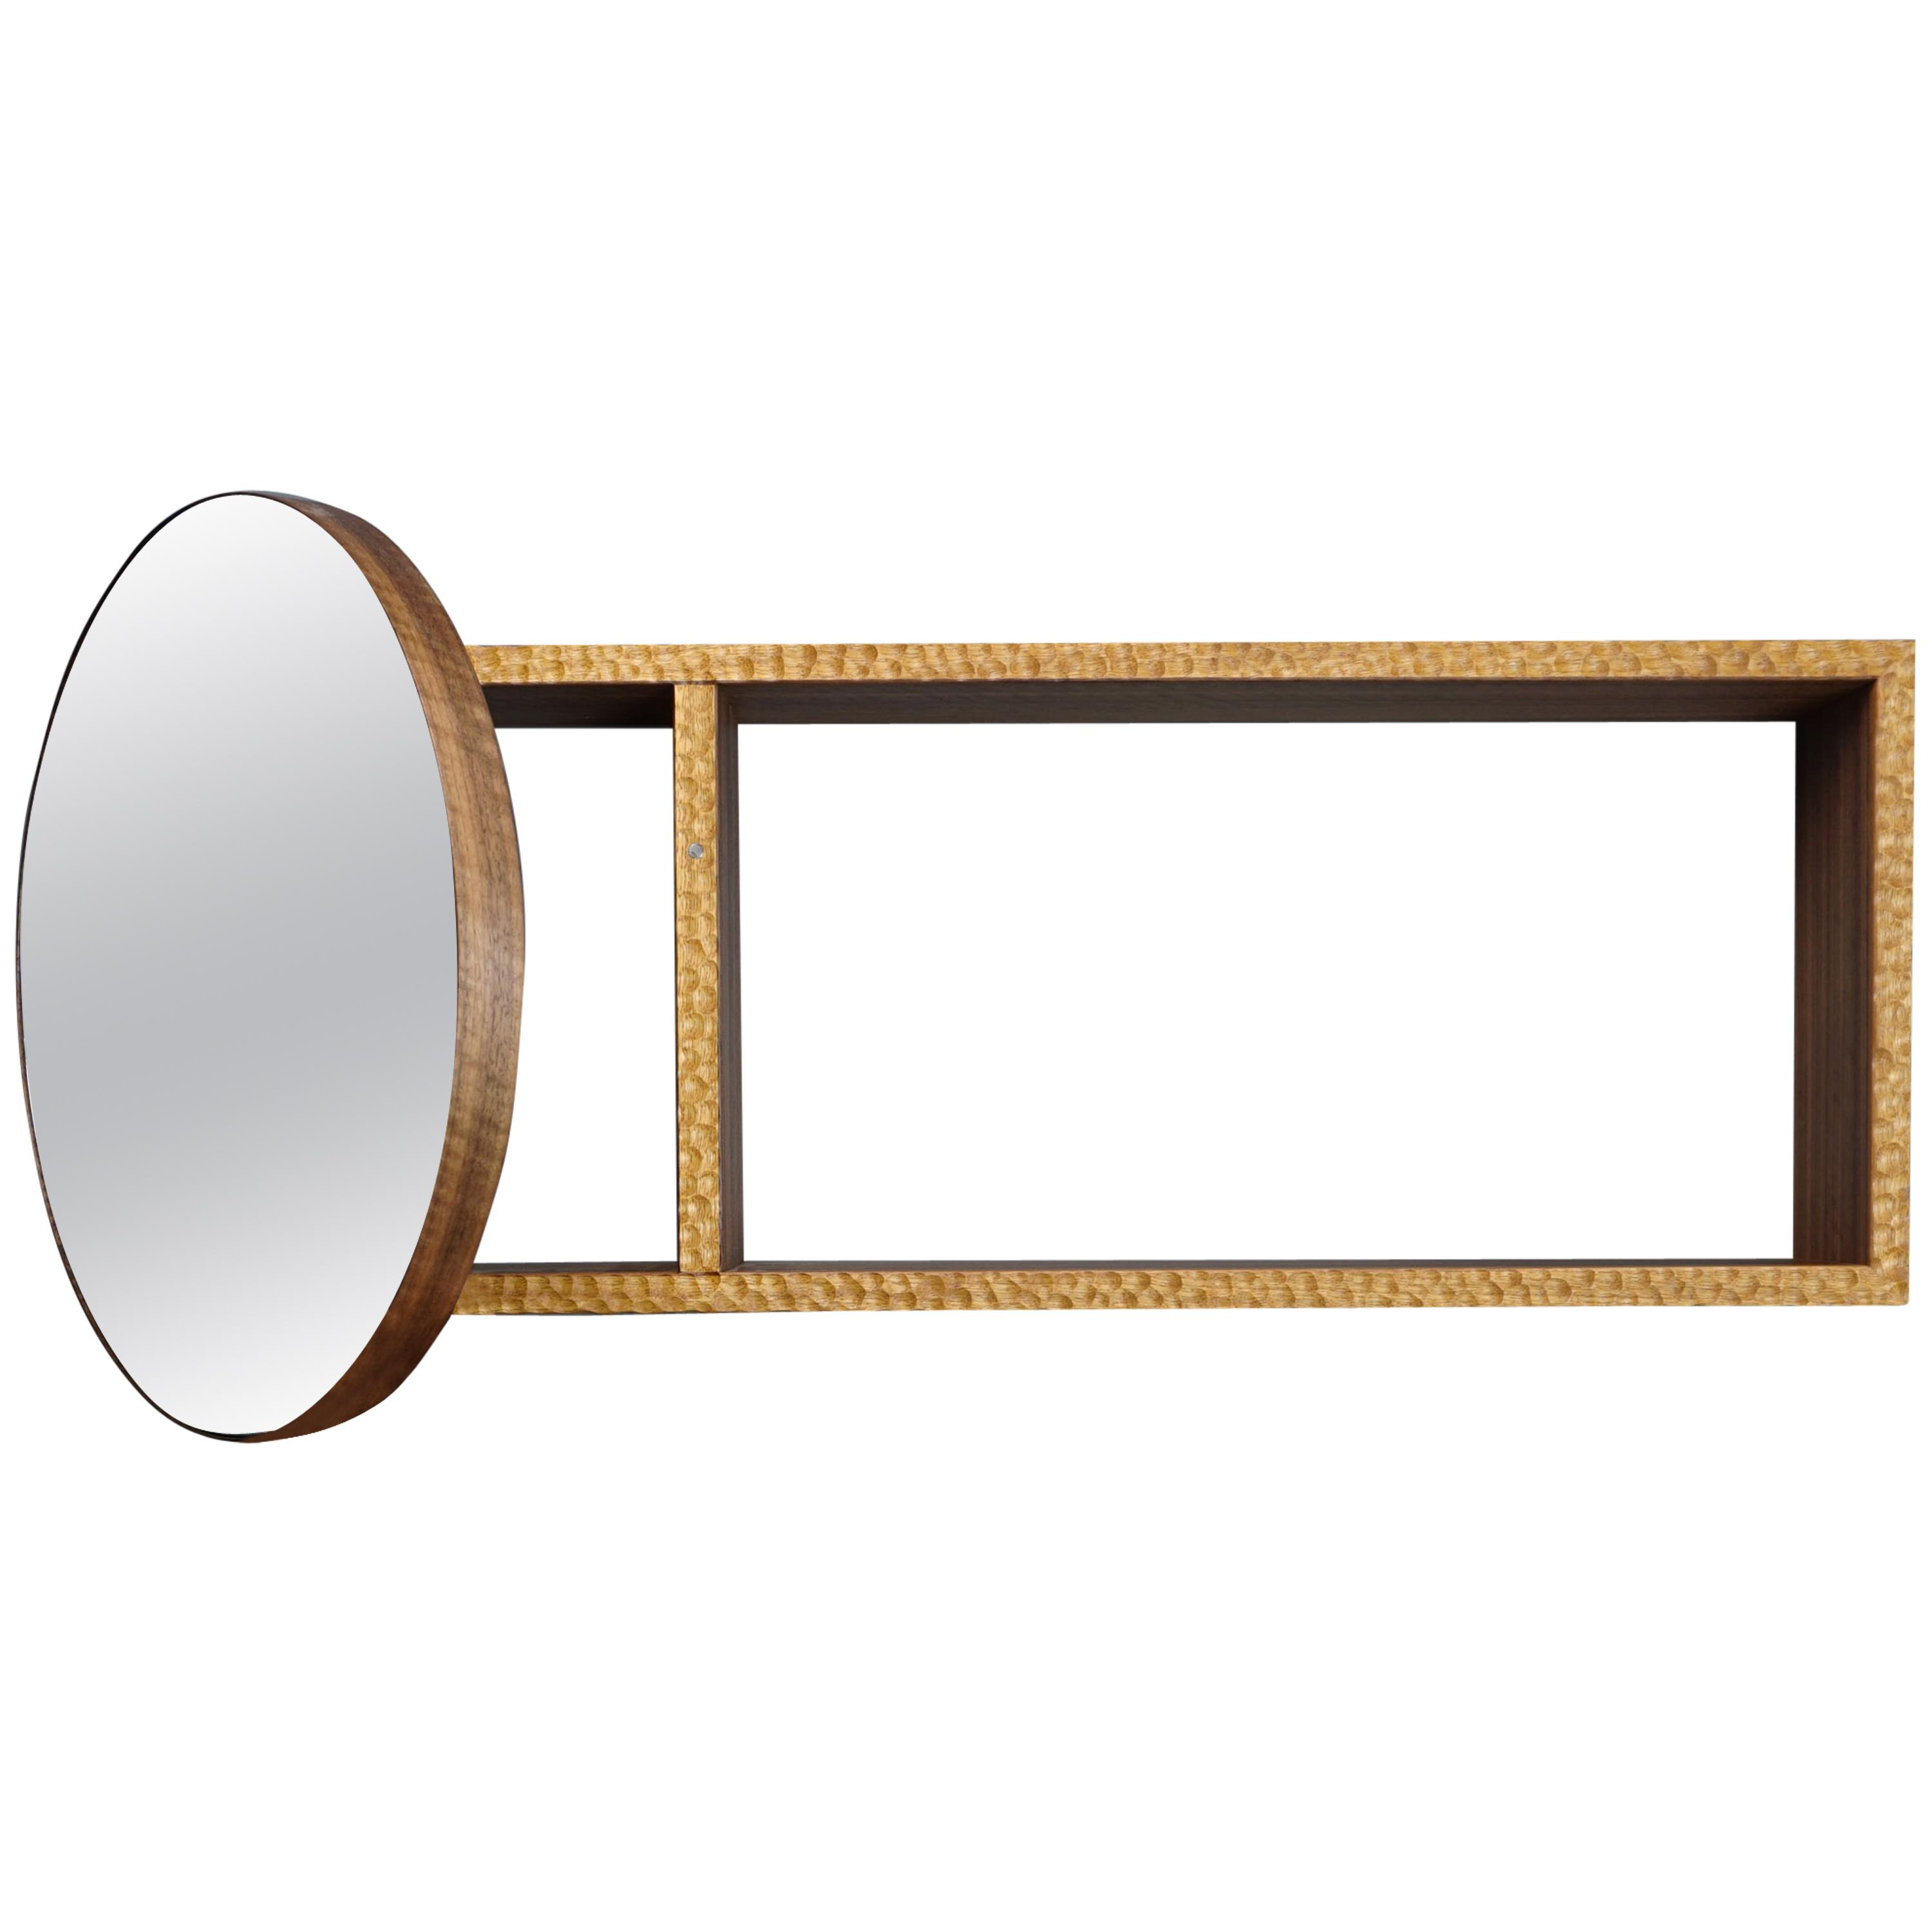 Hinged Wall Mirrors Within Most Popular Textured Cabinet With Mirror Door, Iroko And Walnut, Designedmax Frommeld (View 10 of 20)